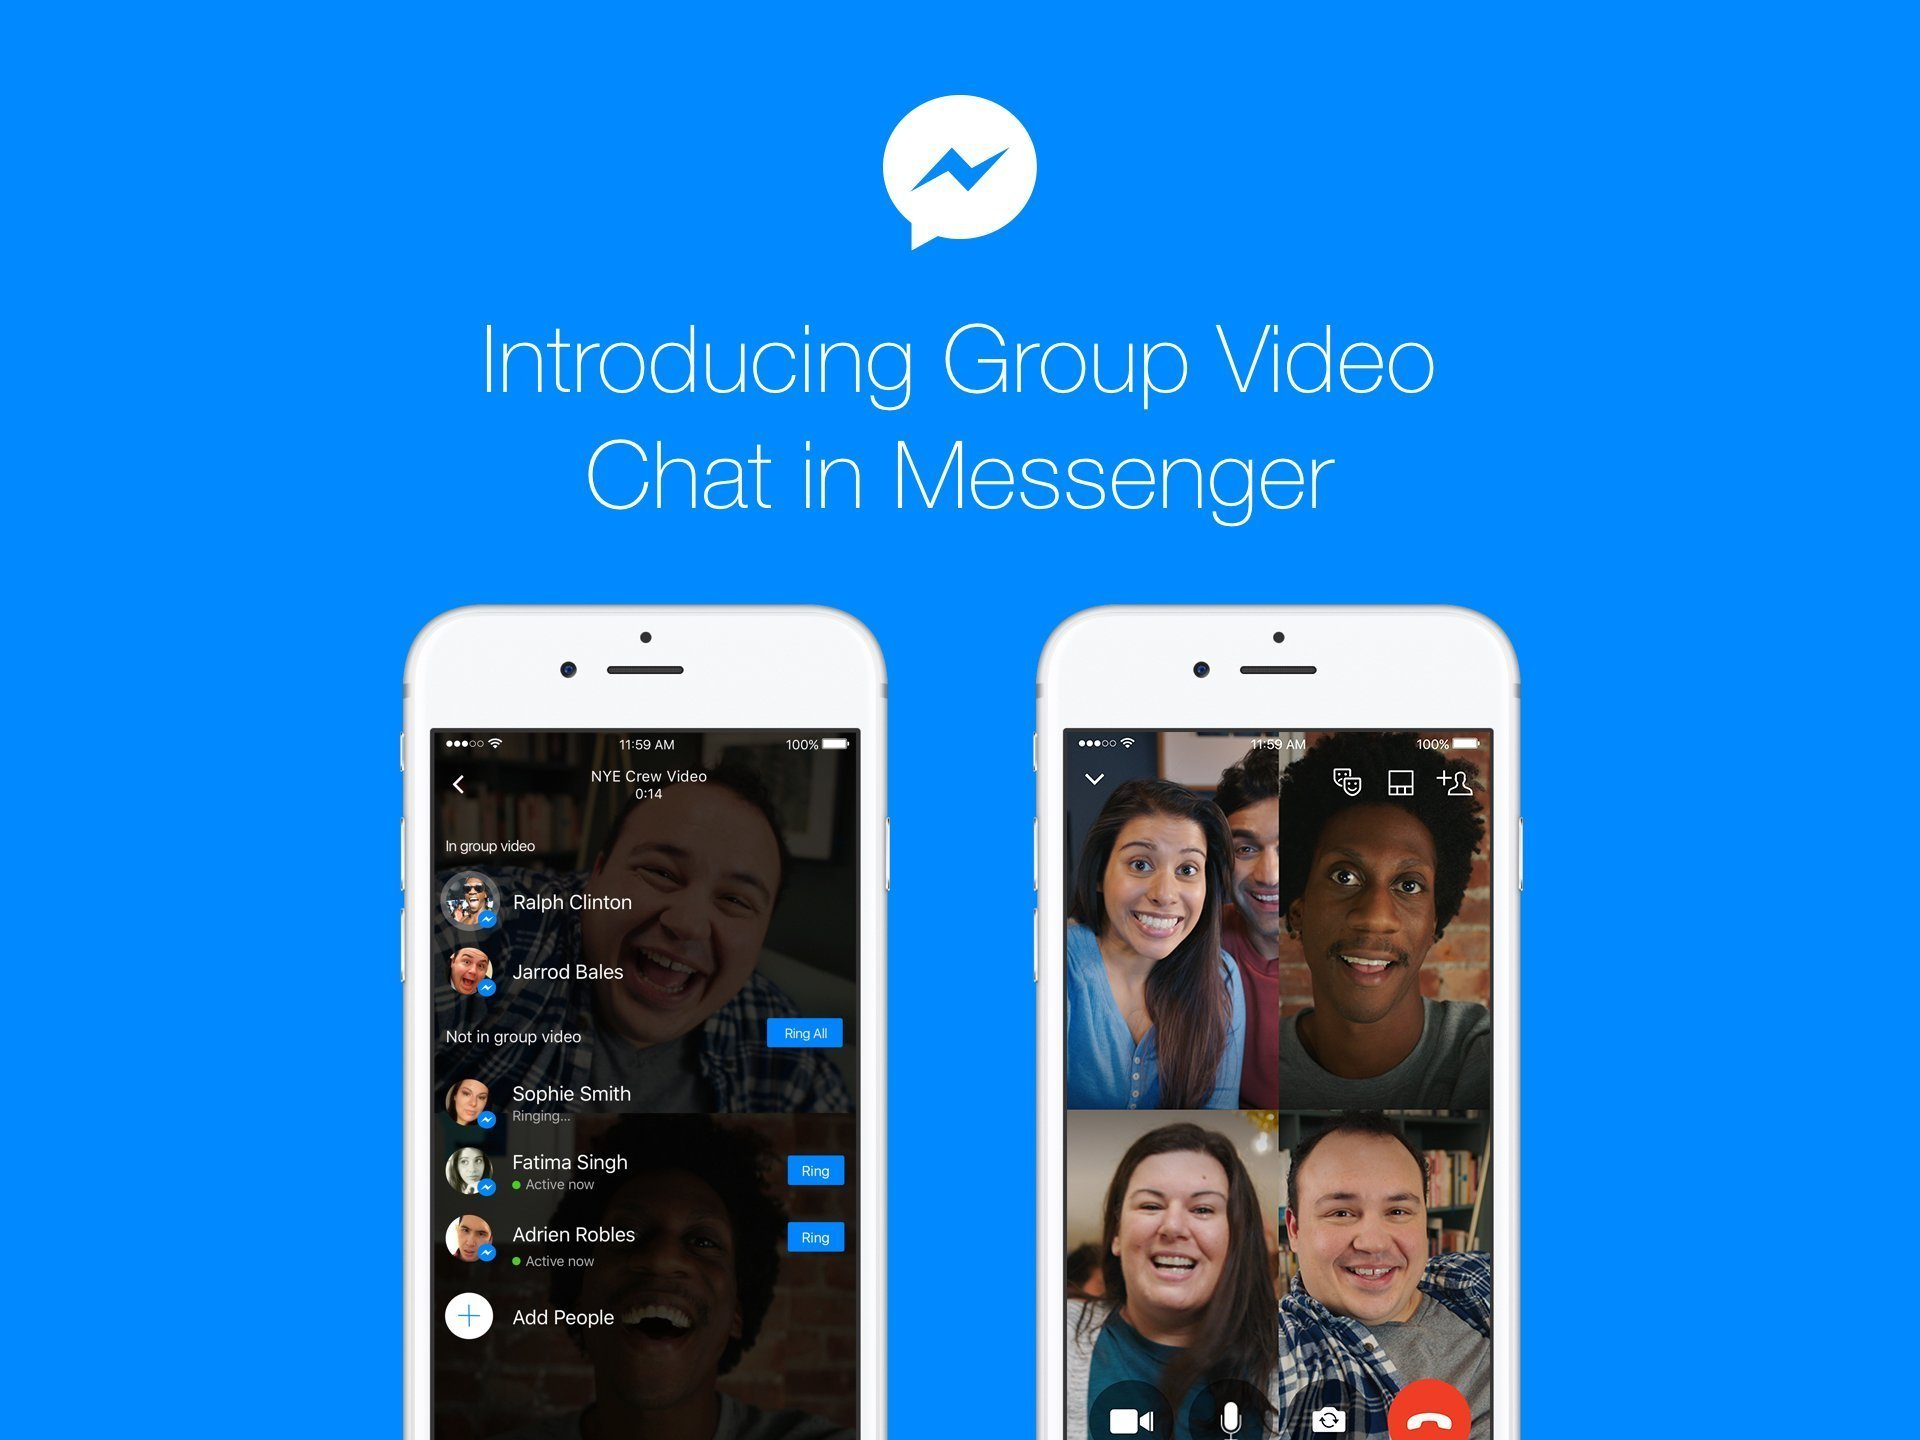 Group Video Chat on Messenger